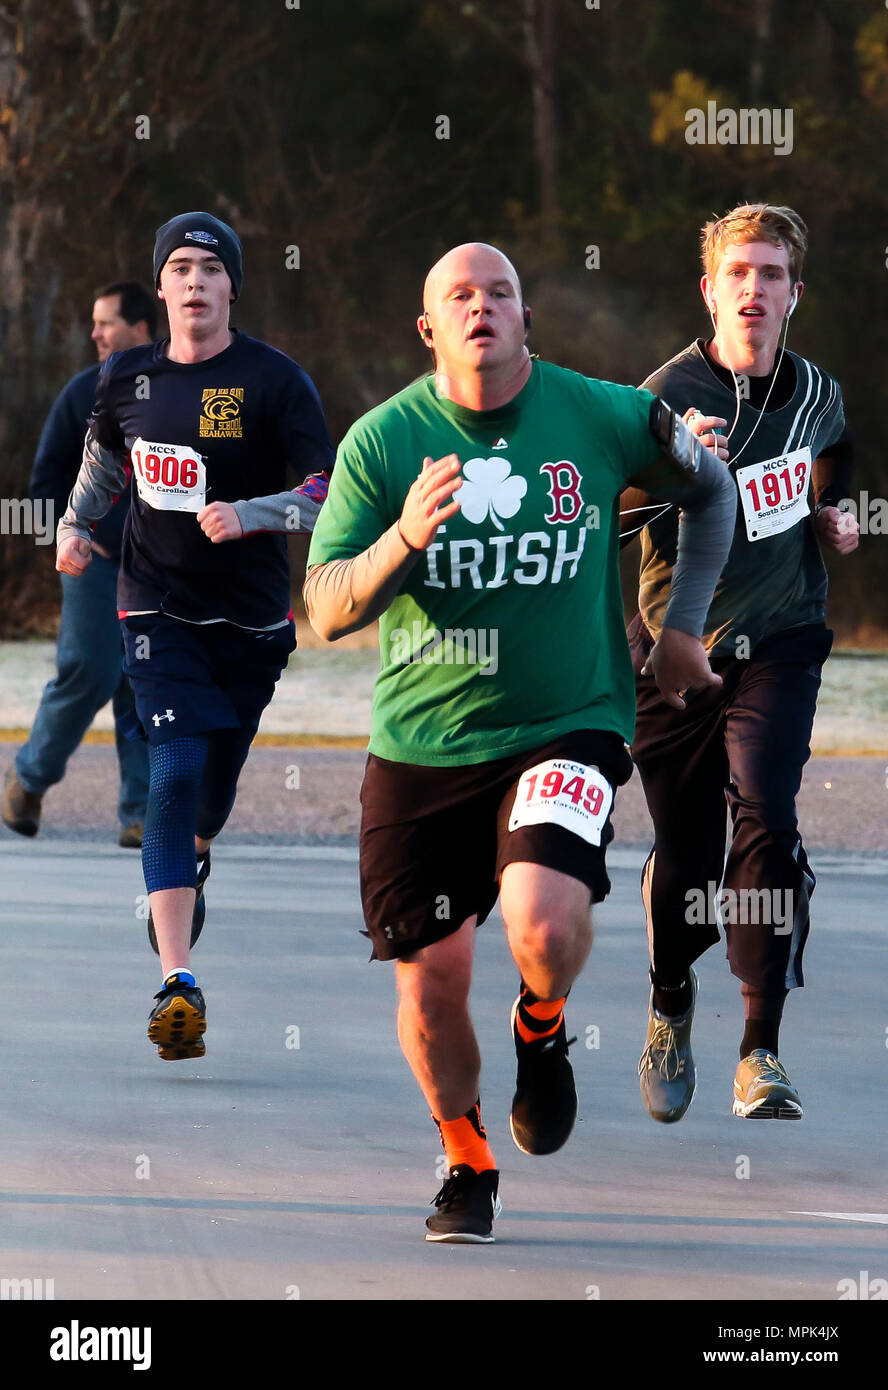 554acf22d Participants sprint down the finish line during a St. Patrick's Day fun run  aboard Marine